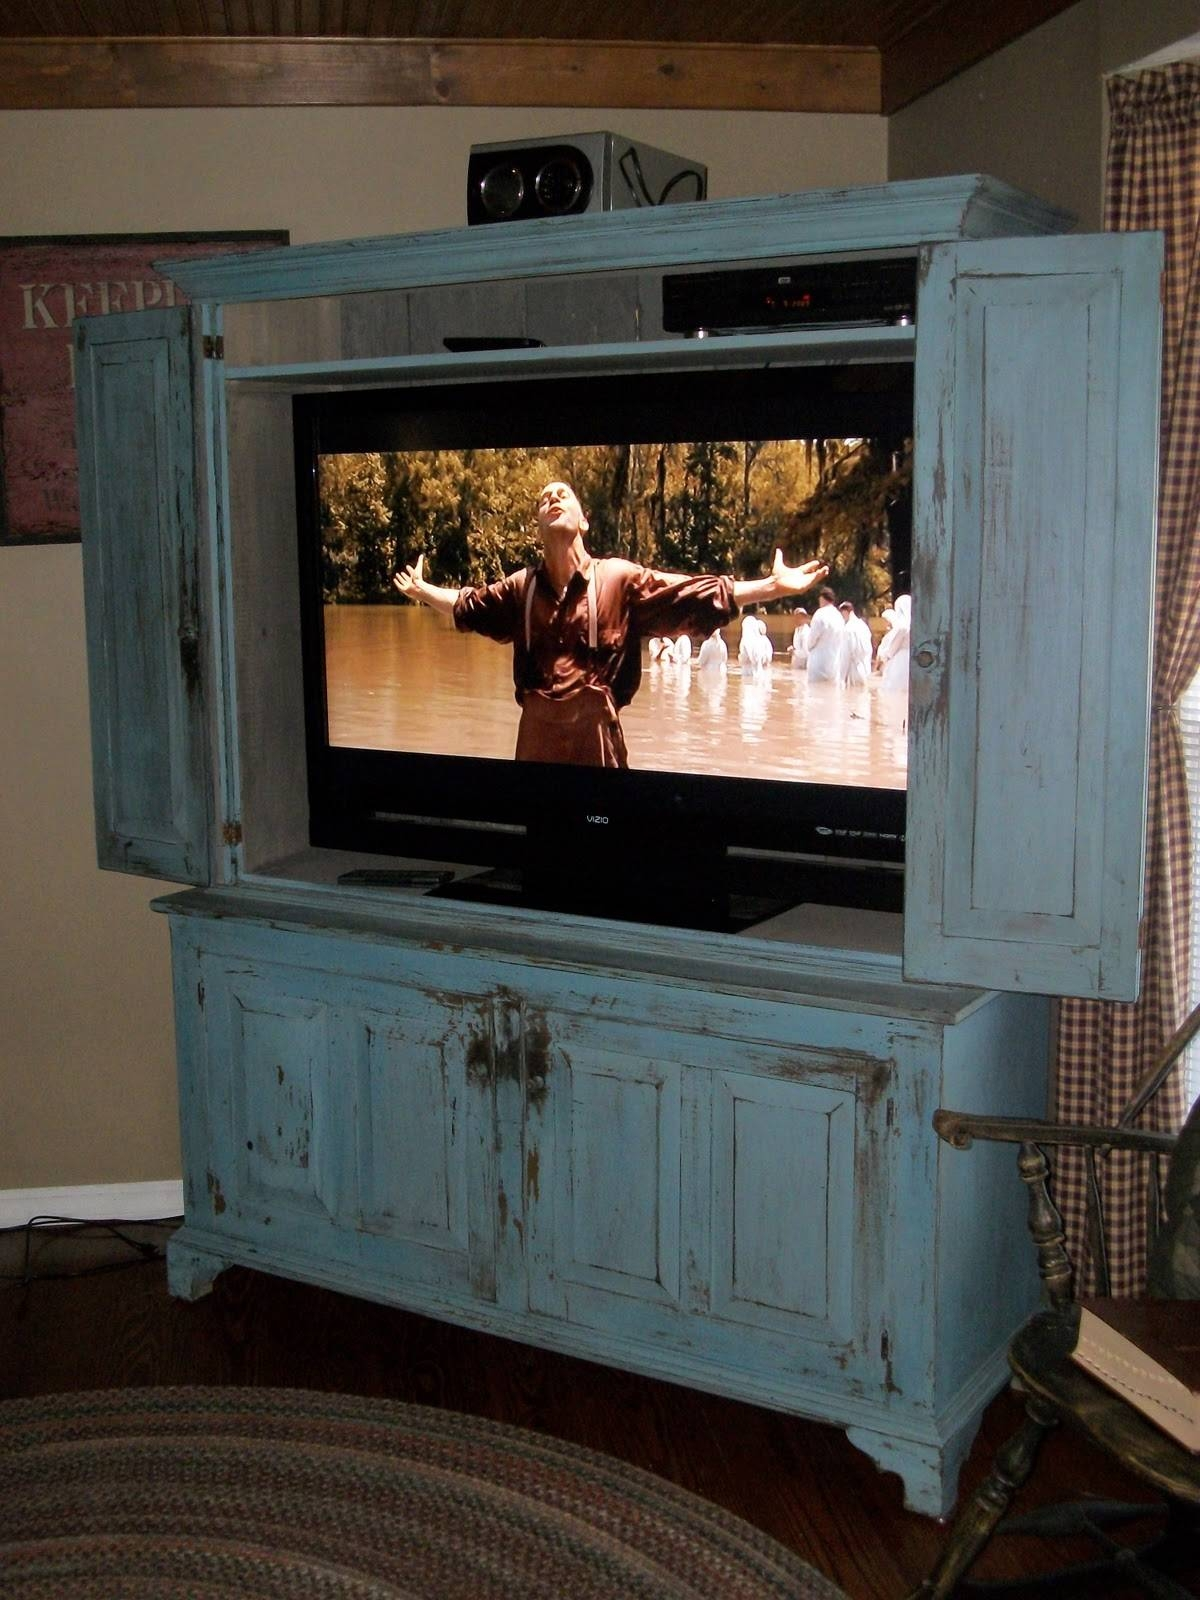 Wooden Tv Cabinets With Doors 82 With Wooden Tv Cabinets With In Funky Tv Cabinets (View 12 of 15)